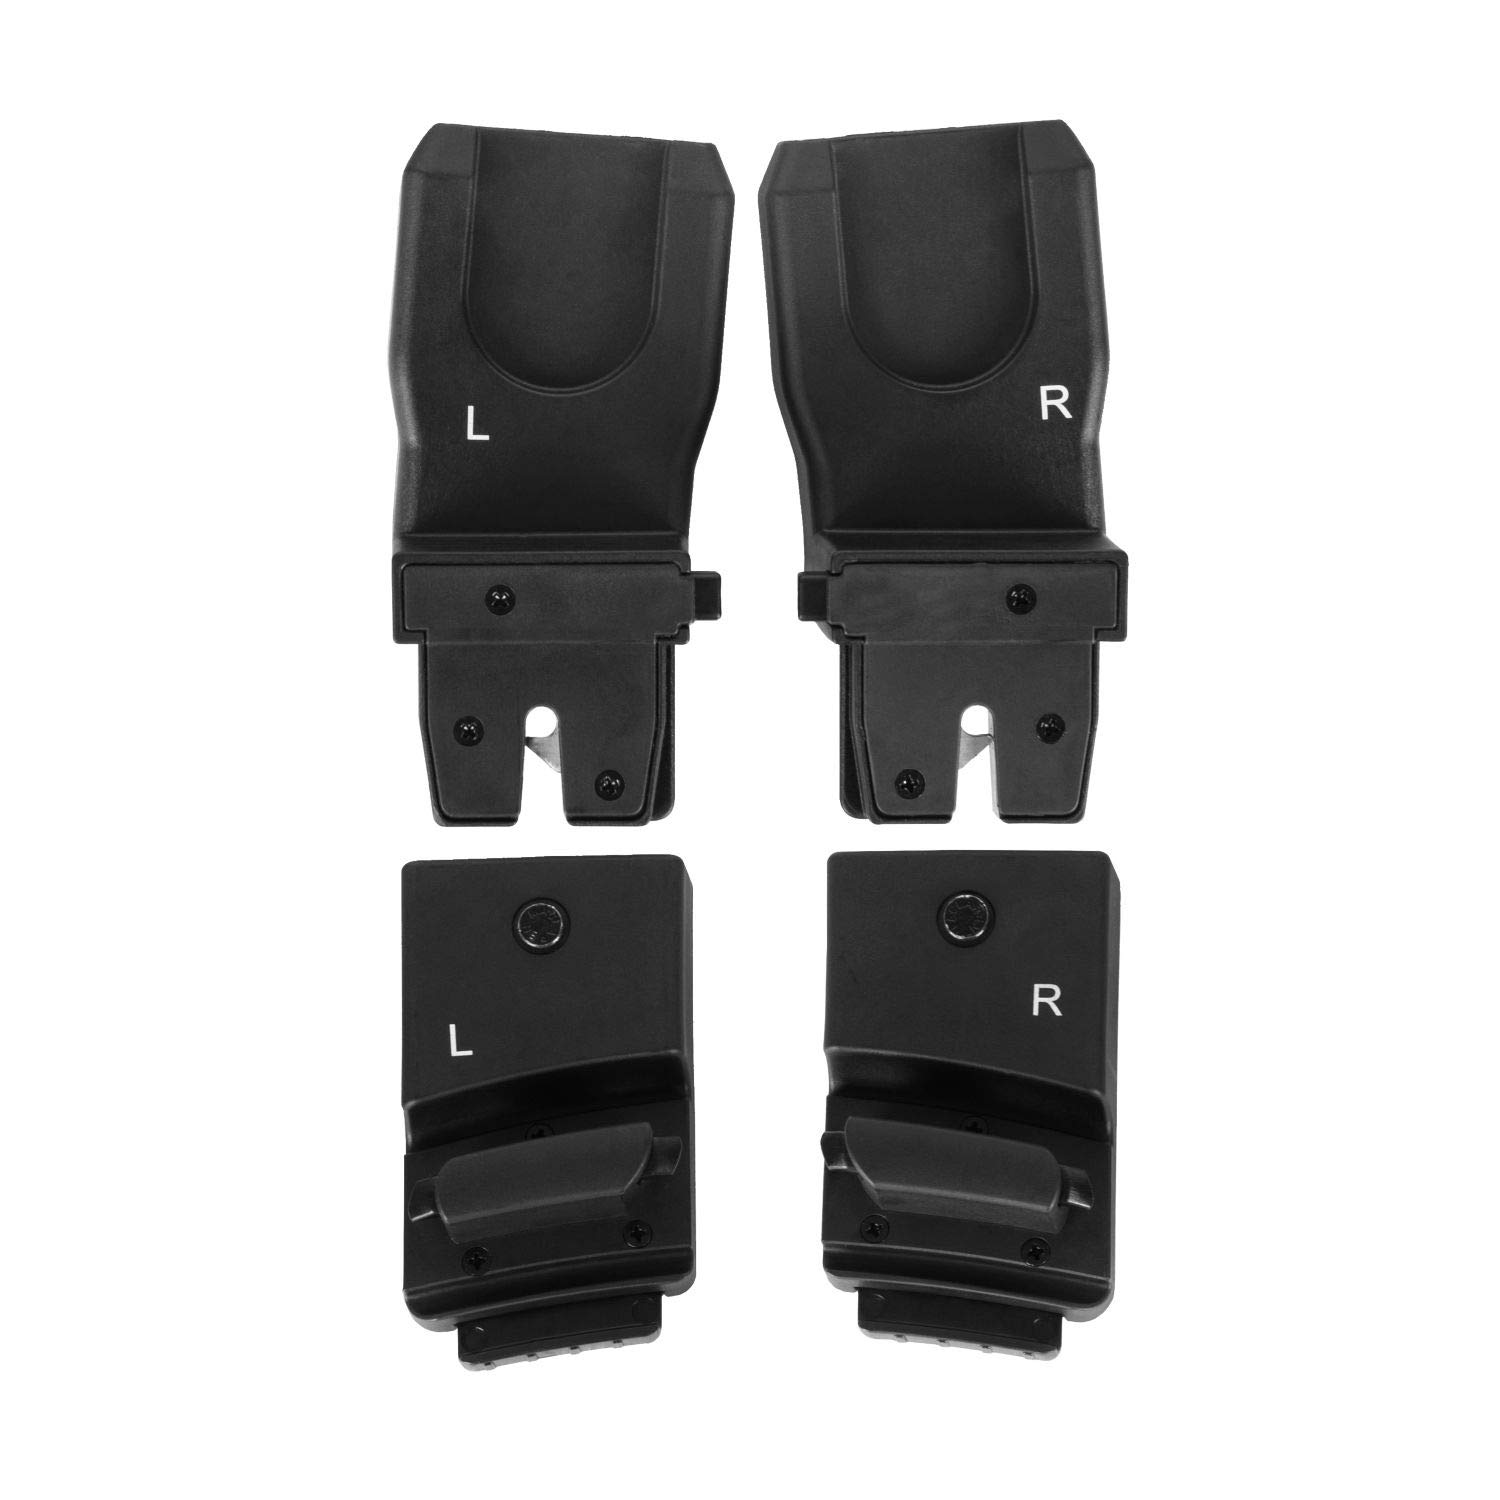 Maclaren atom Car Seat Adaptor Maxi Cosi and Cybex- Fits Maxi Cosi and Cybex infant car seats. The adaptor easily clicks into the base of the atom stroller and the car seat's latching mechanism